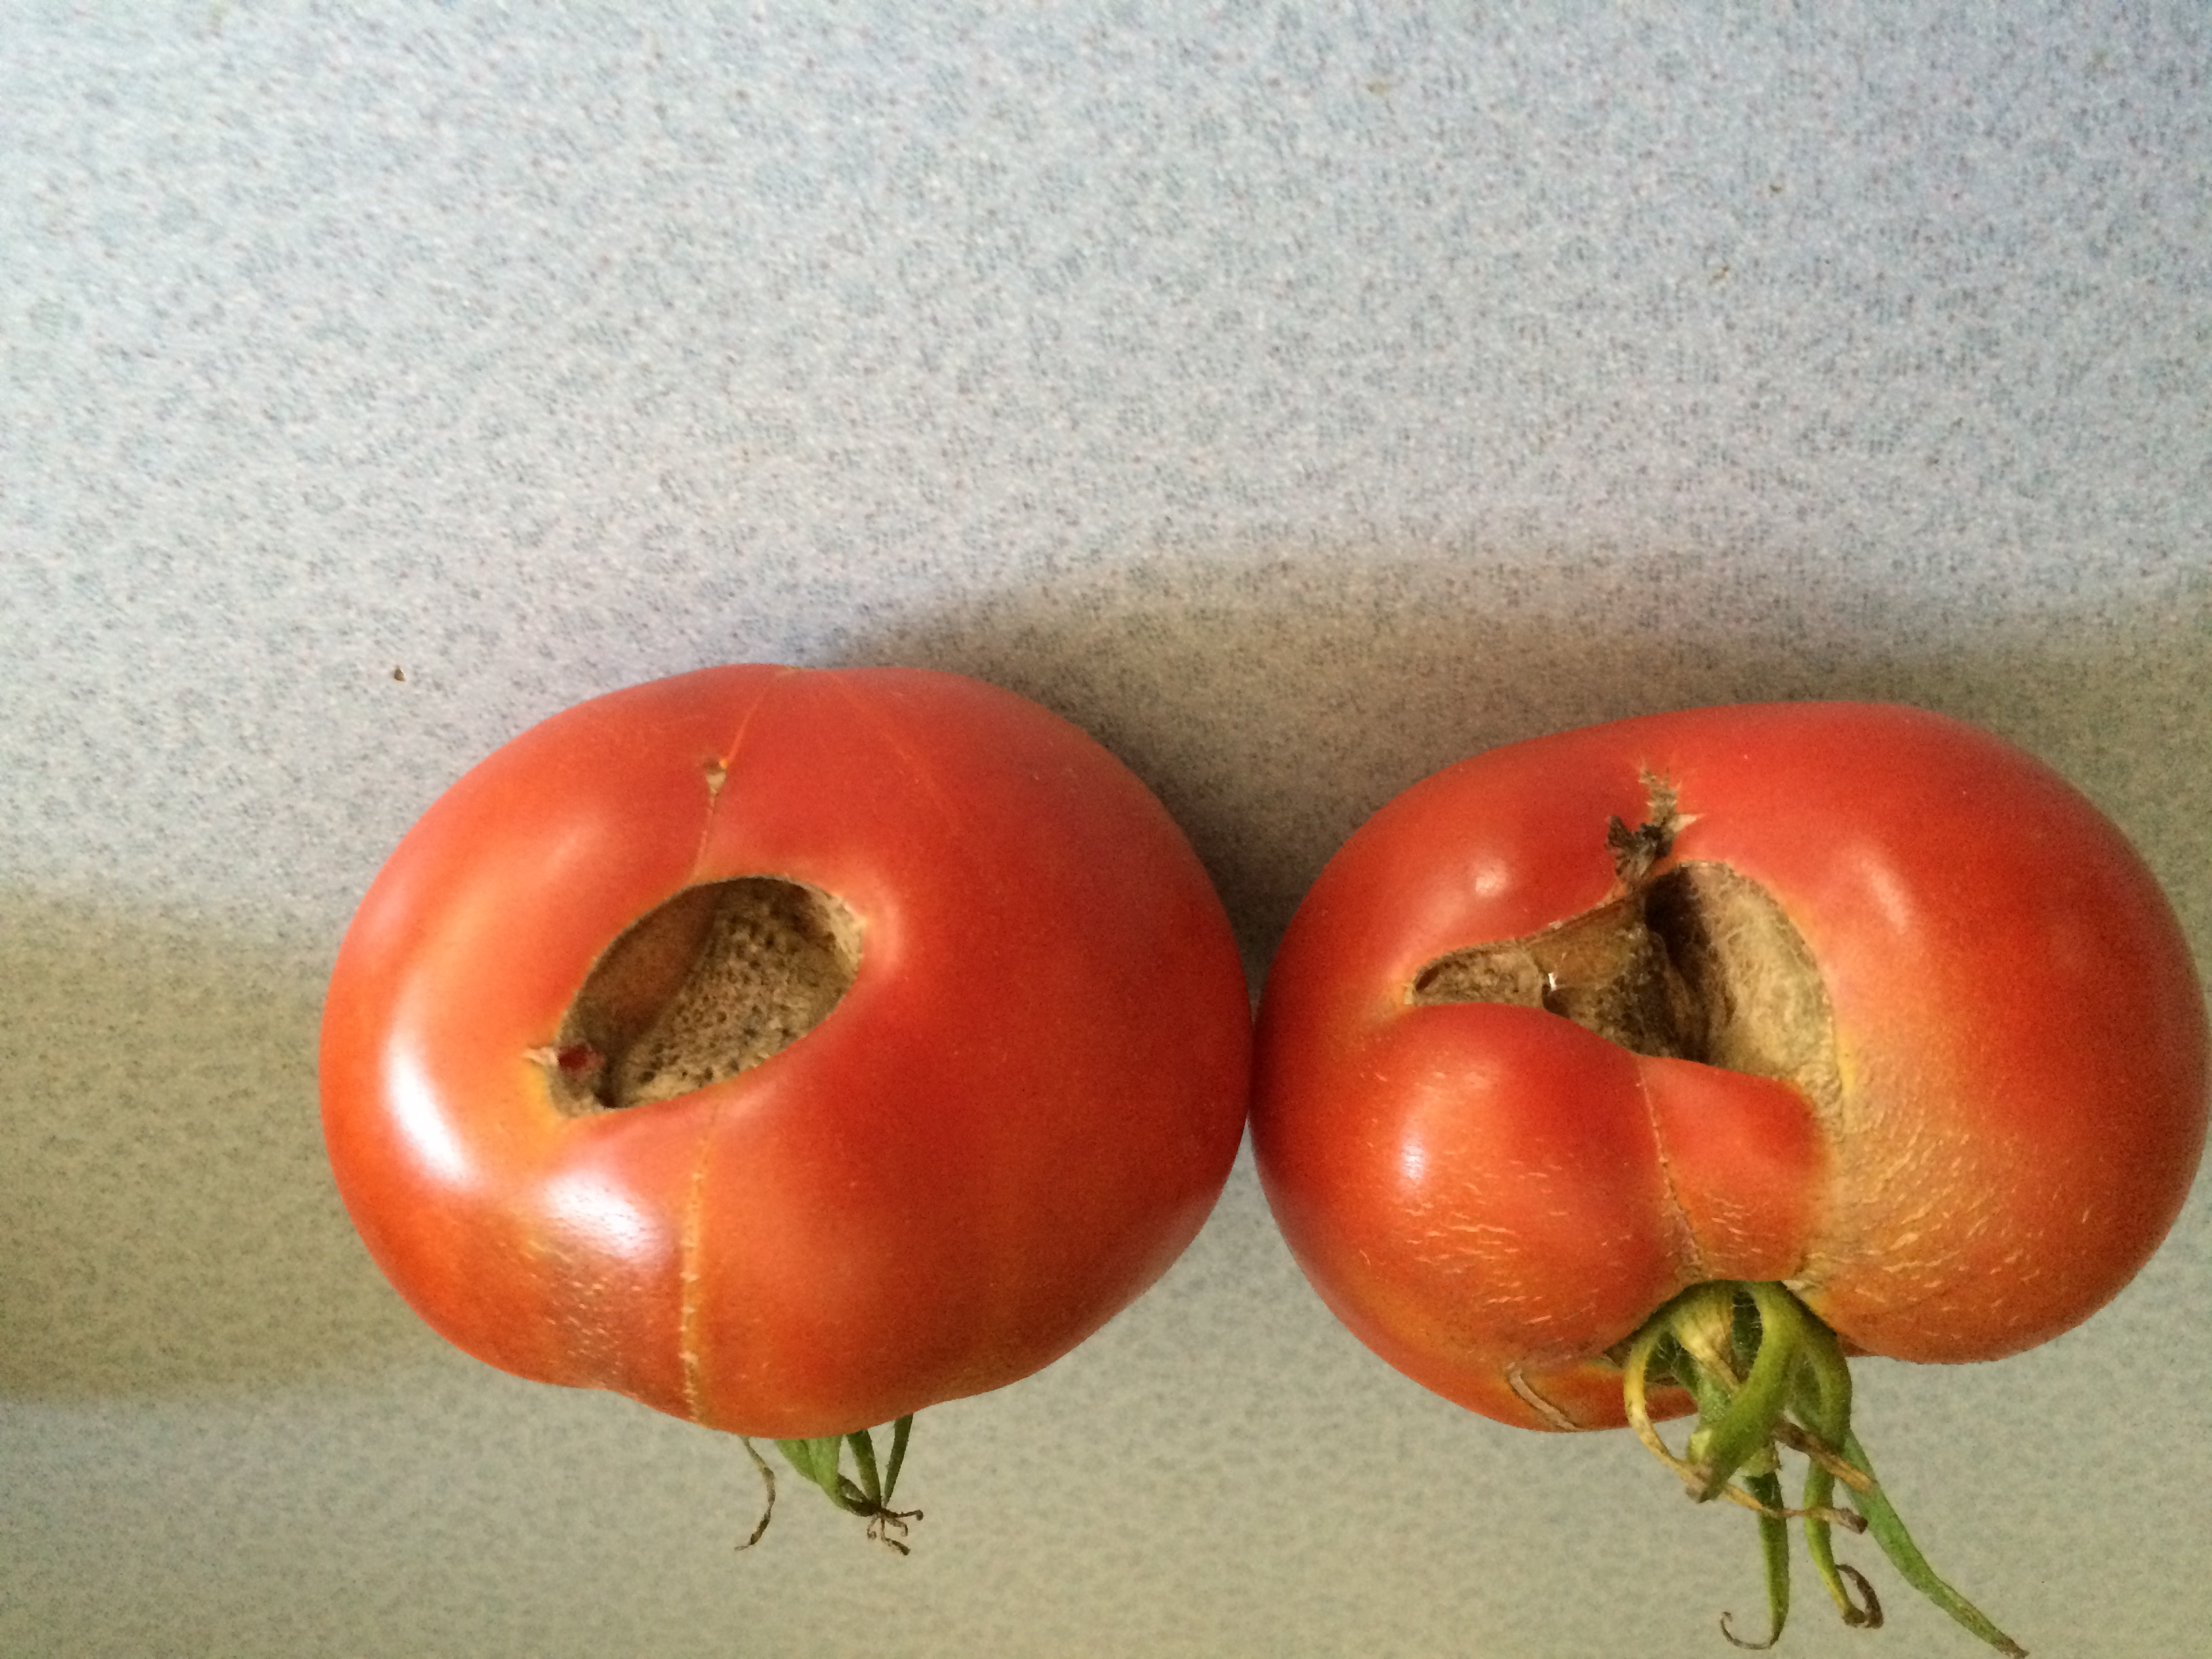 Brown spots on tomatoes